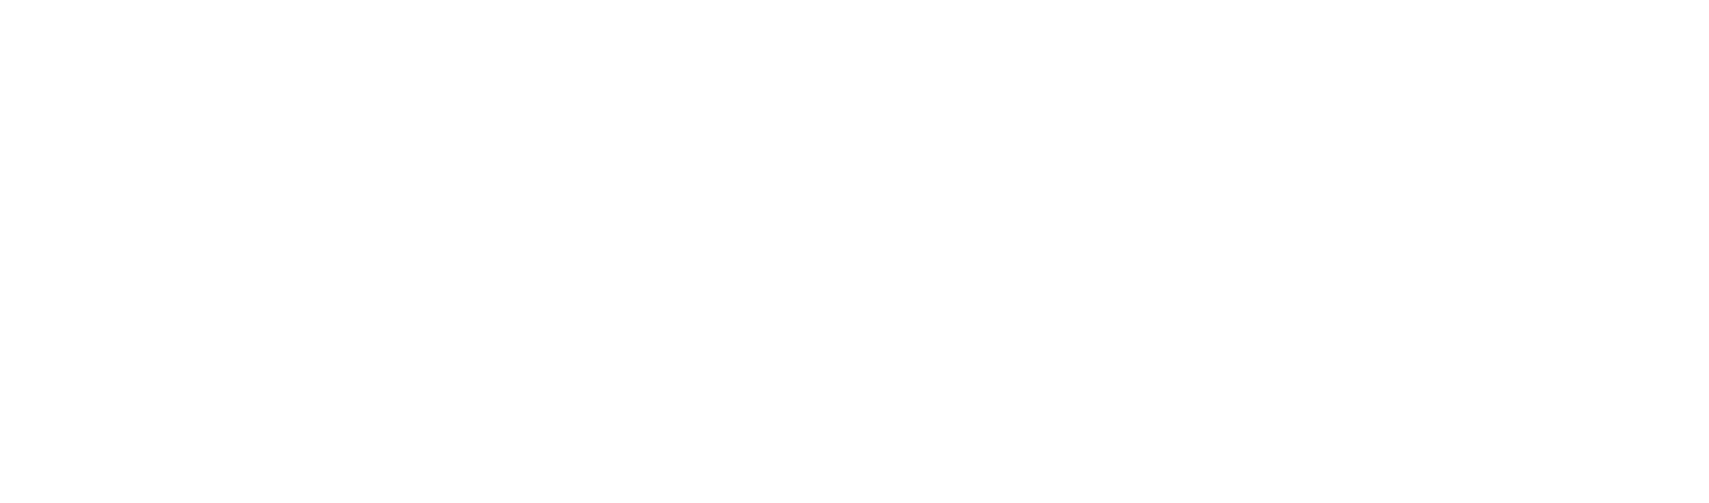 We connect you win logo